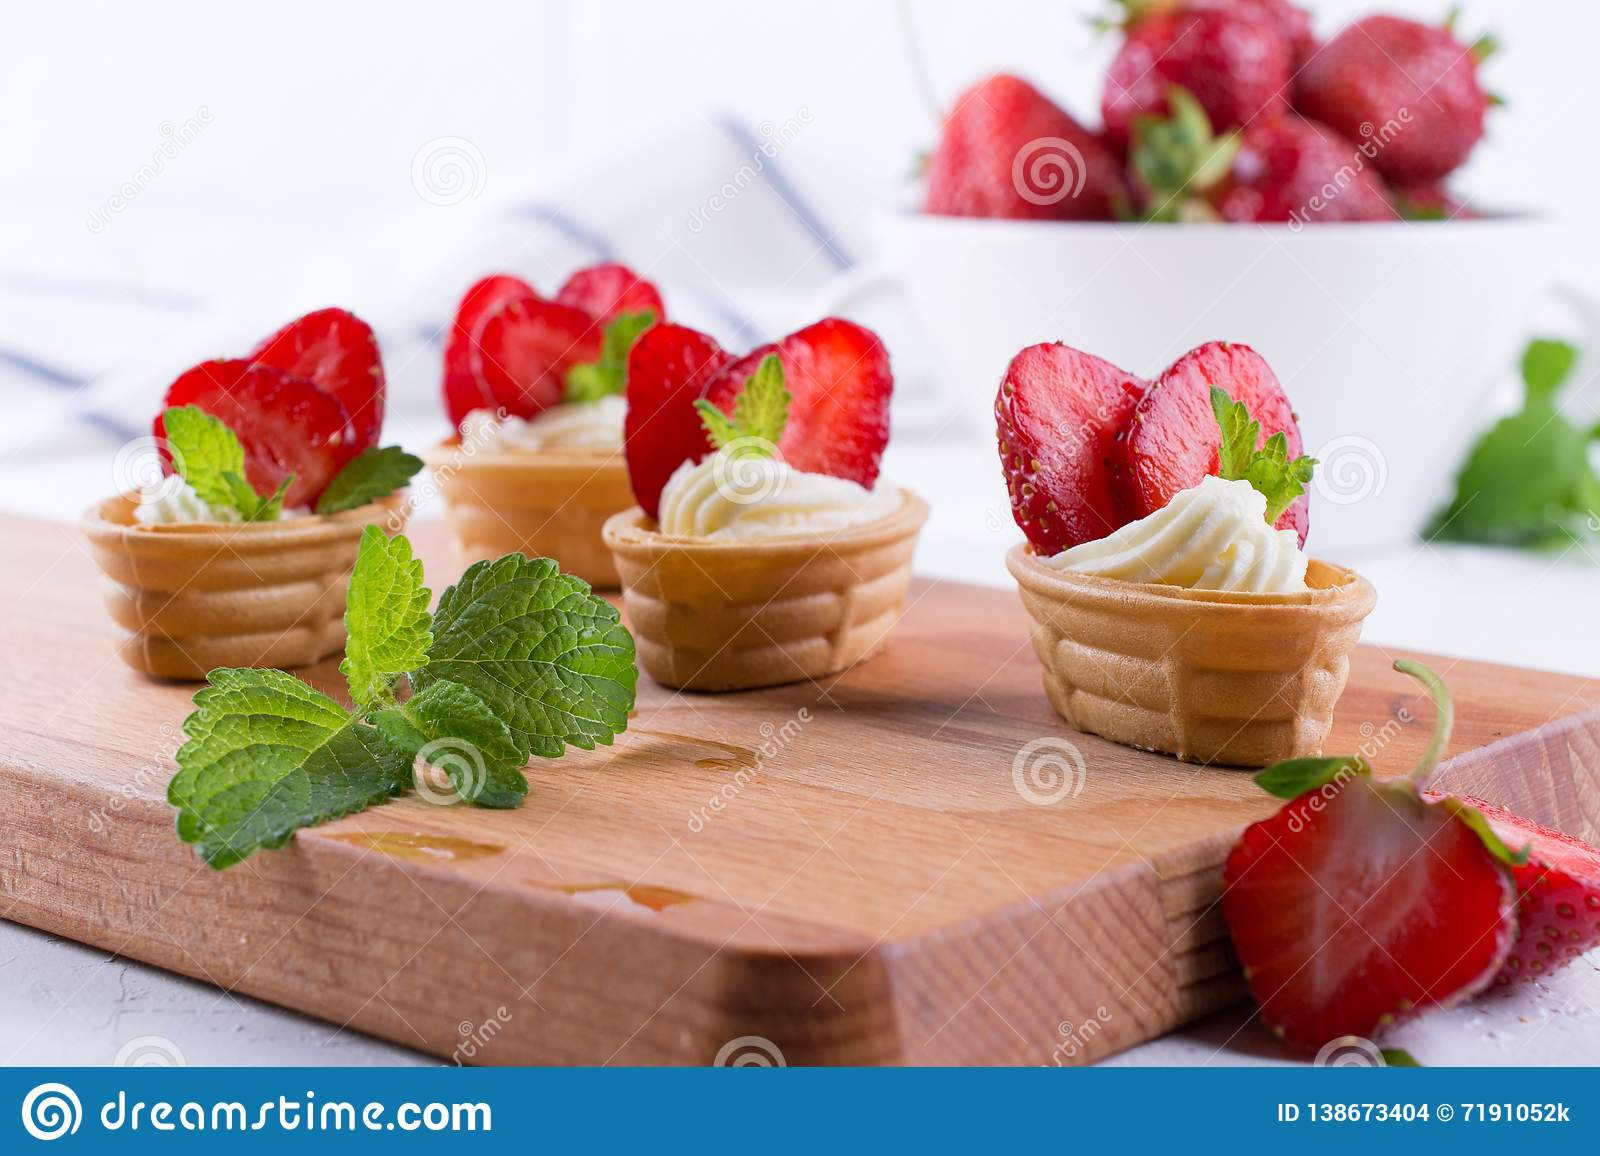 Fresh and tasty snack with cream cheese fruits and berries.